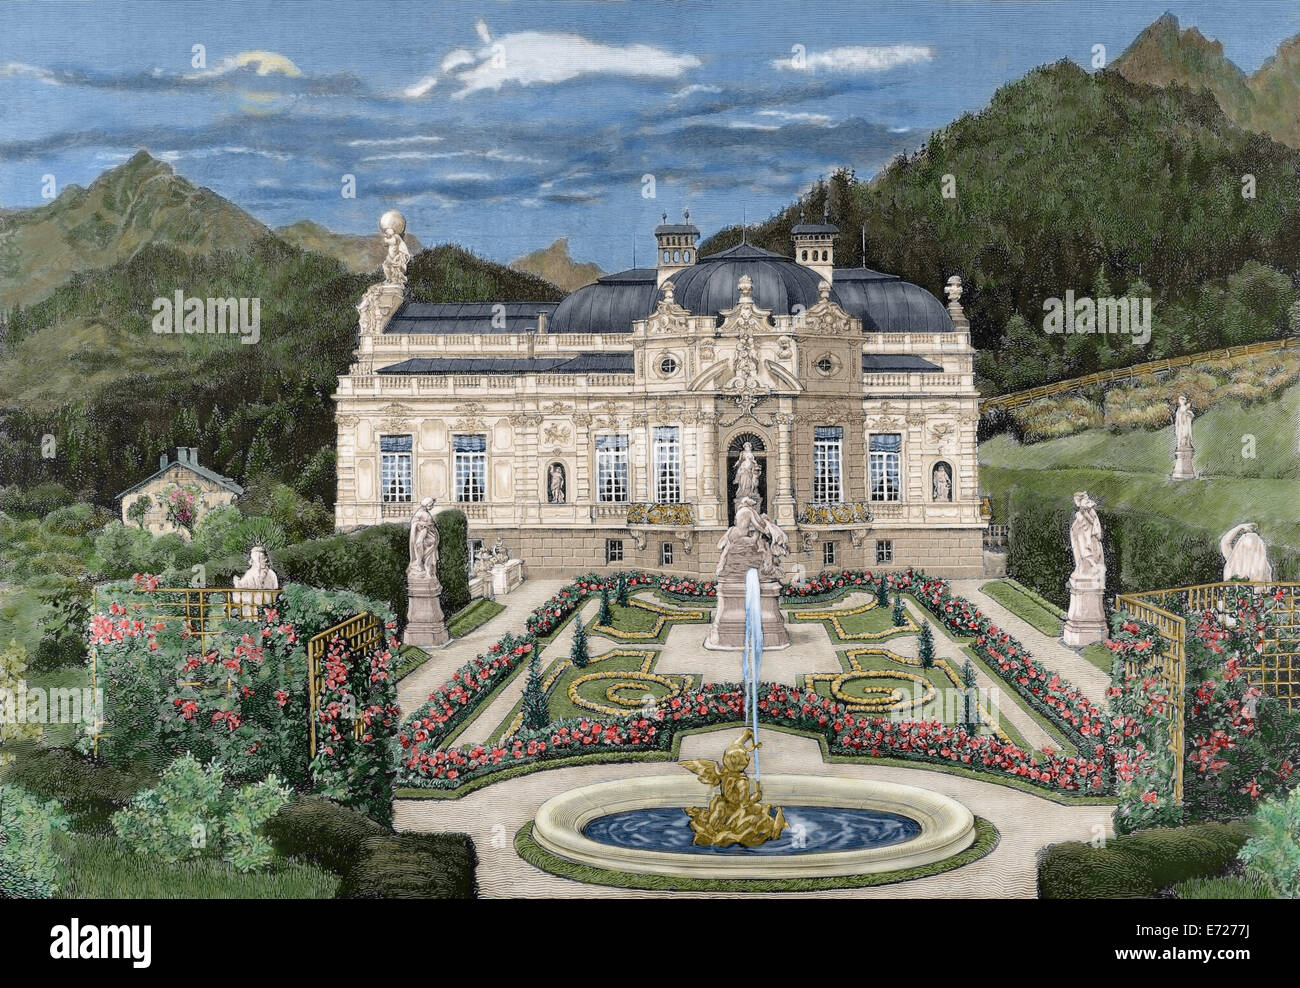 Ludwig II of Bavaria (1845-1886). King of Bavaria. Palace of Linderhof. Engraving. Colored. - Stock Image